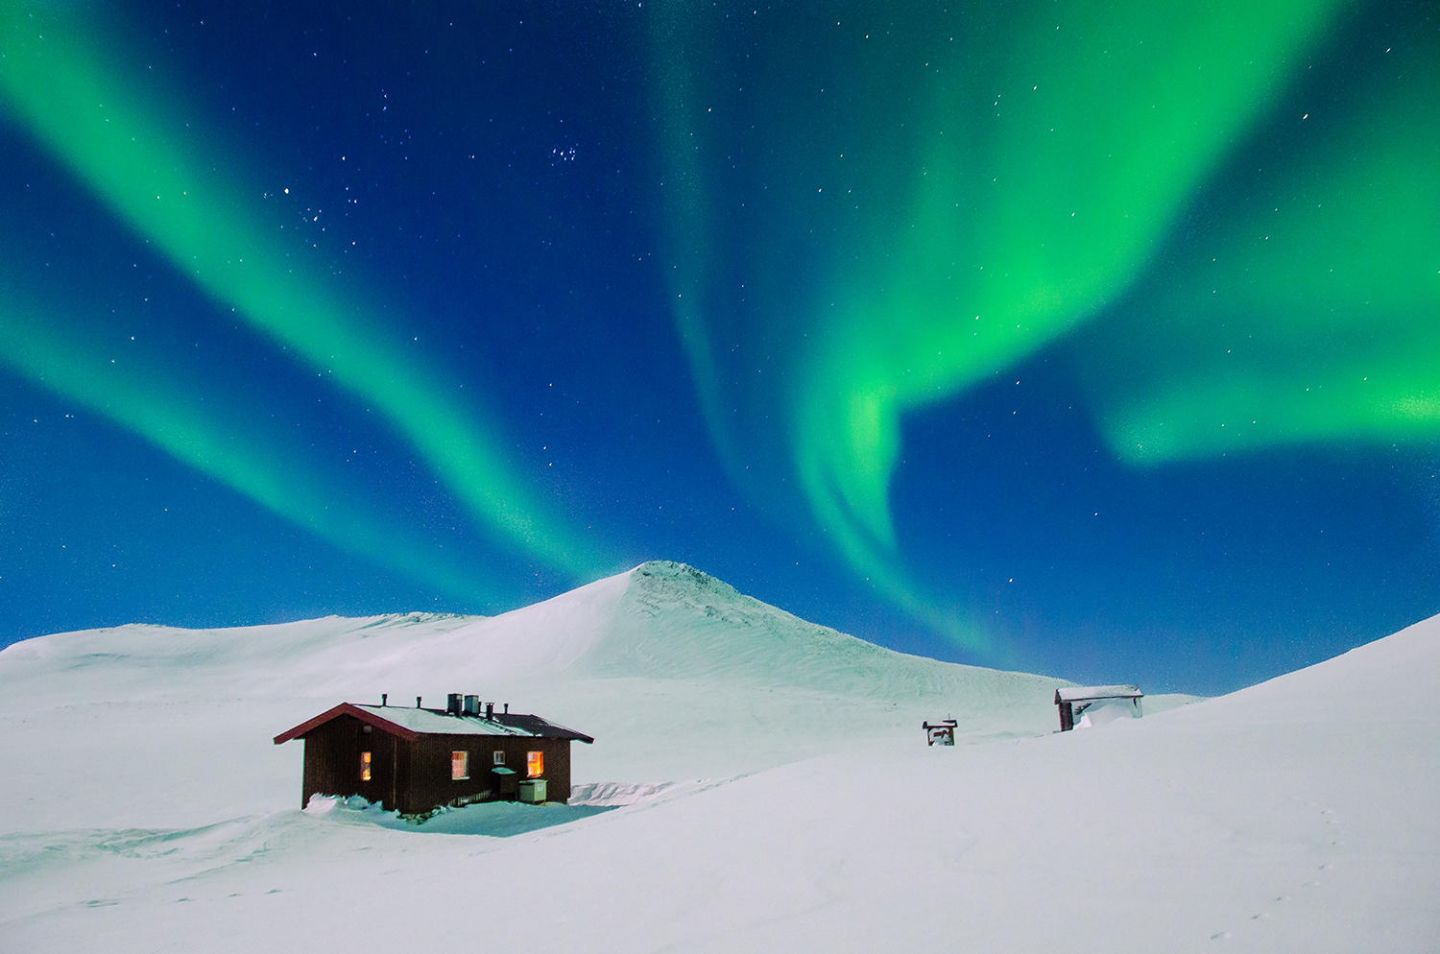 Auroras over a cabin in Lapland